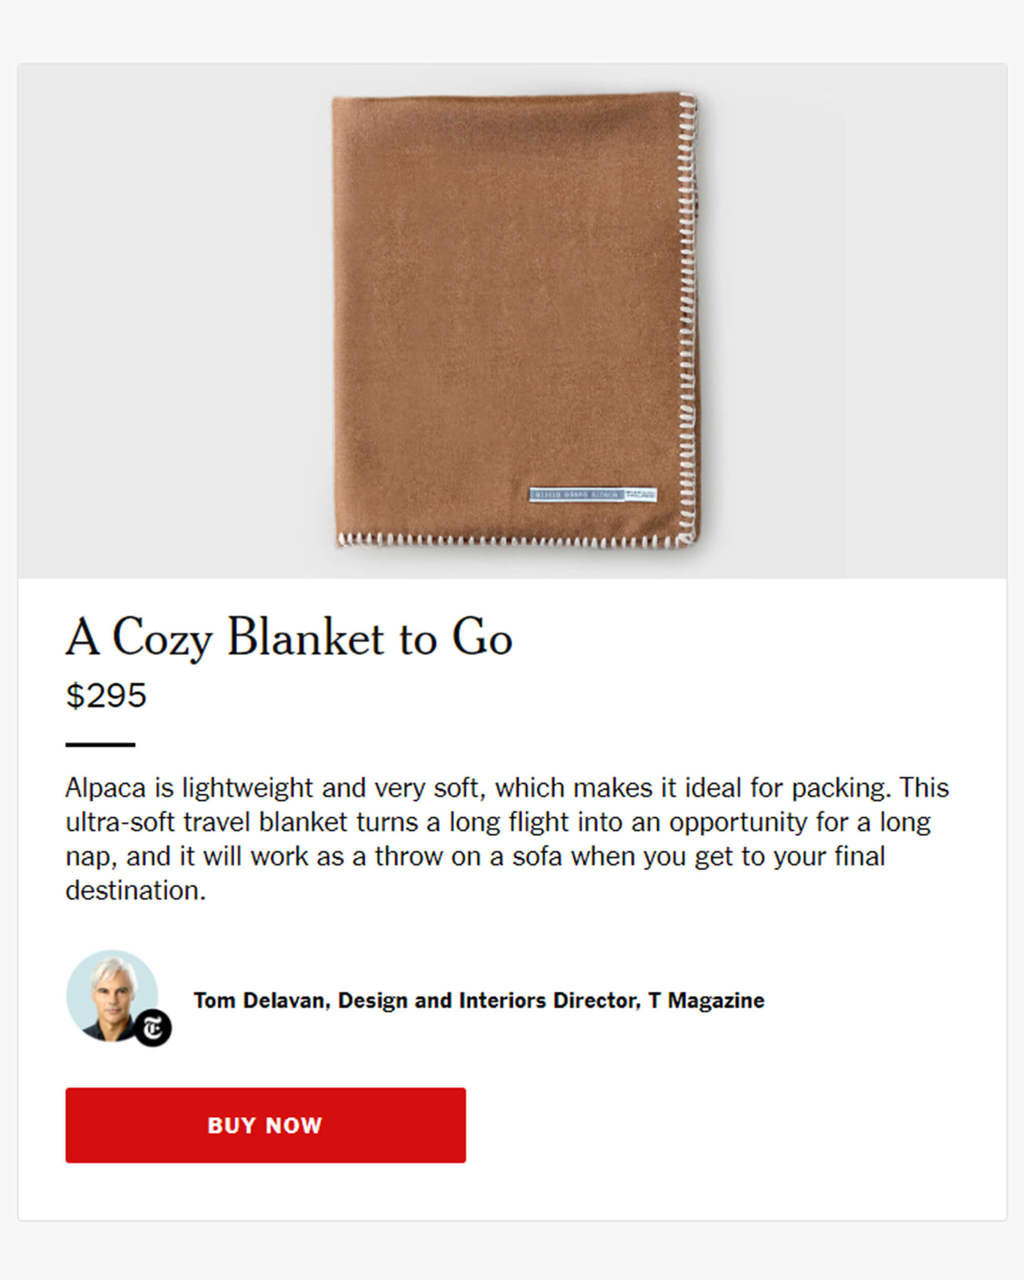 Alicia Adams Alpaca Arena Travel Blanket with contrast stitch, gift for jet-setter, gift for him, gift for graduate, airplane accessories, alpaca blanket for travel, acclaimed by Wall Street Journal, New York Times Magazine Gift Bag, in 100% baby alpaca lightweight, rich colors, all fair-trade made, sustainable, softer than cashmere, cognac/beige